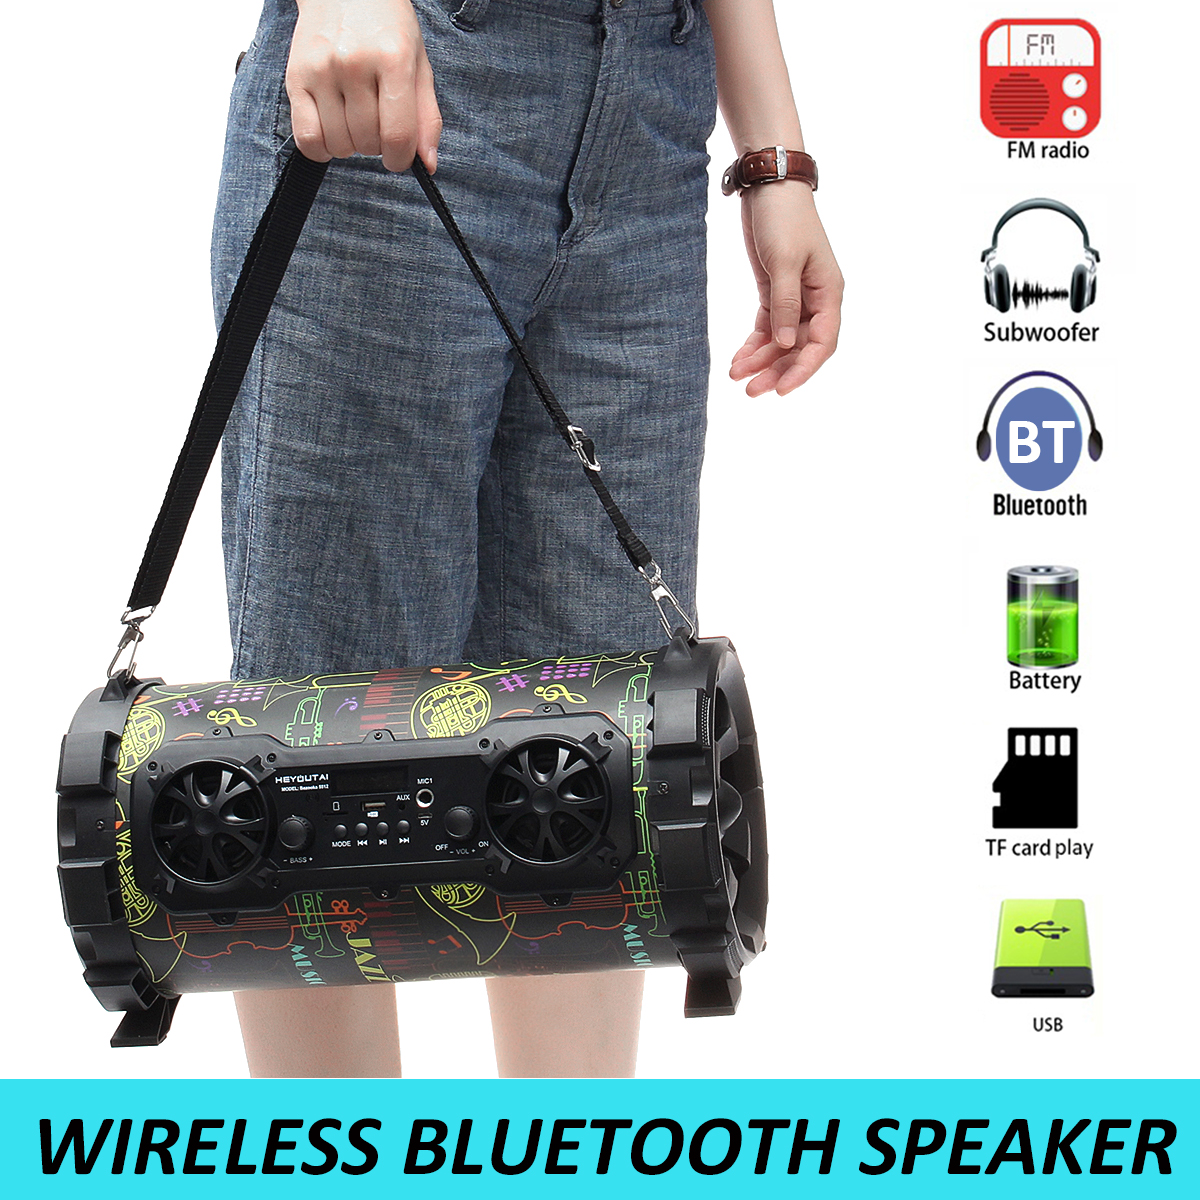 Portable Outdoor Speaker 25W Wireless Bluetooth V4.1 Speaker Loudspeaker Sound System AUX/USB/TF Card/Radio FM Player Music 25w wireless bluetooth speaker stereo bass portable loudspeaker sound system aux usb tf card fm radio outdoor speaker subwoofer